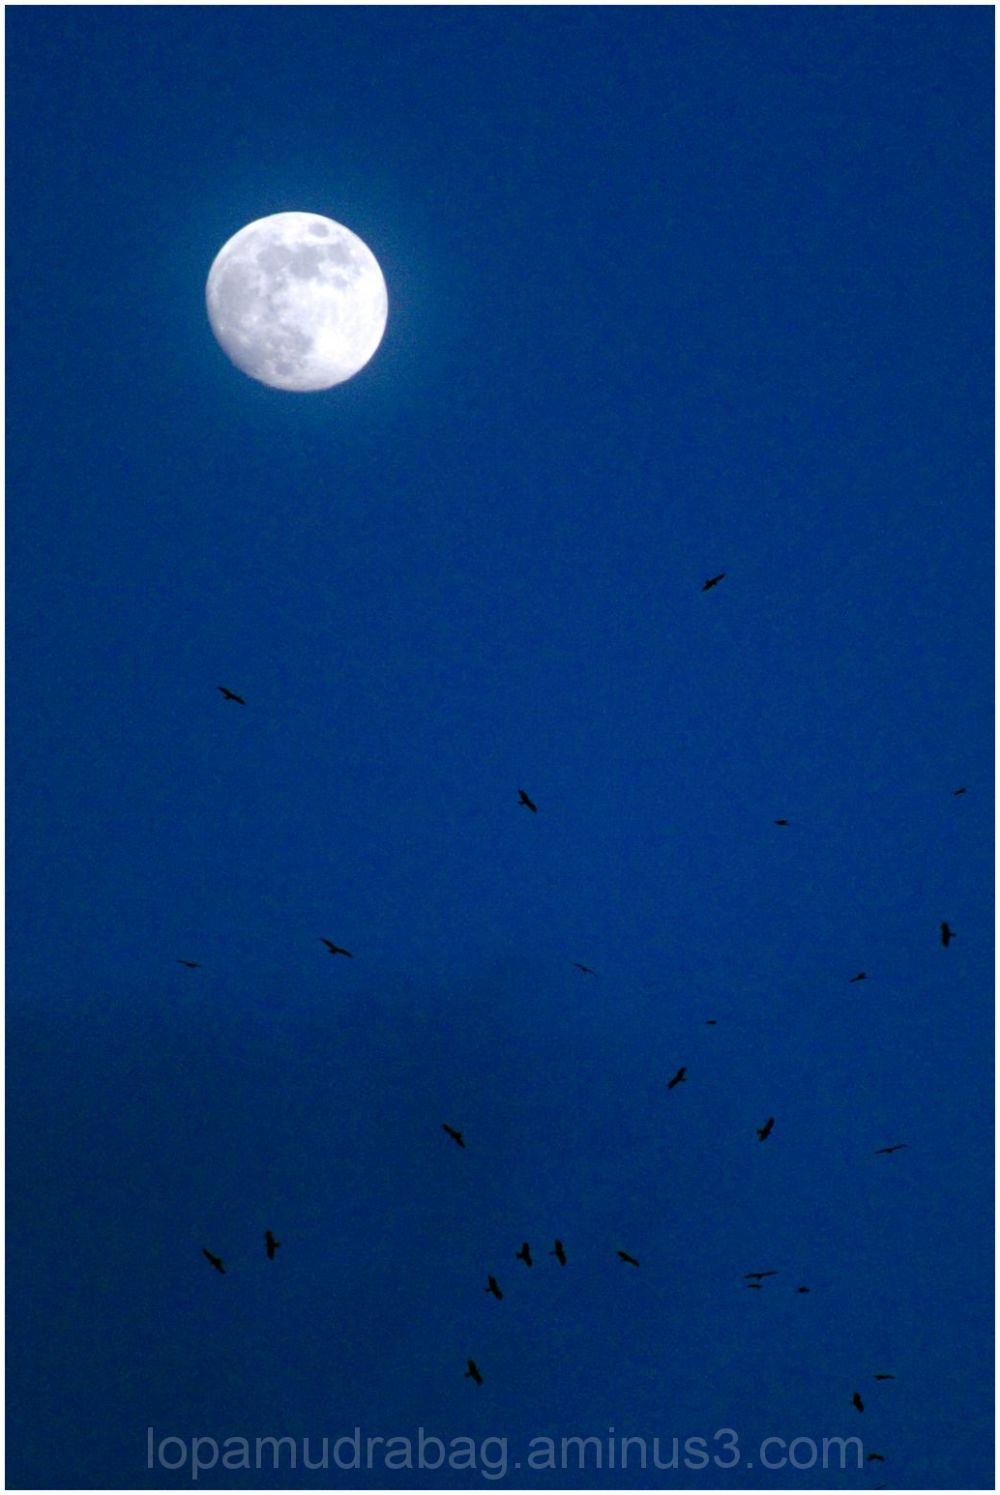 The Moon and the birds